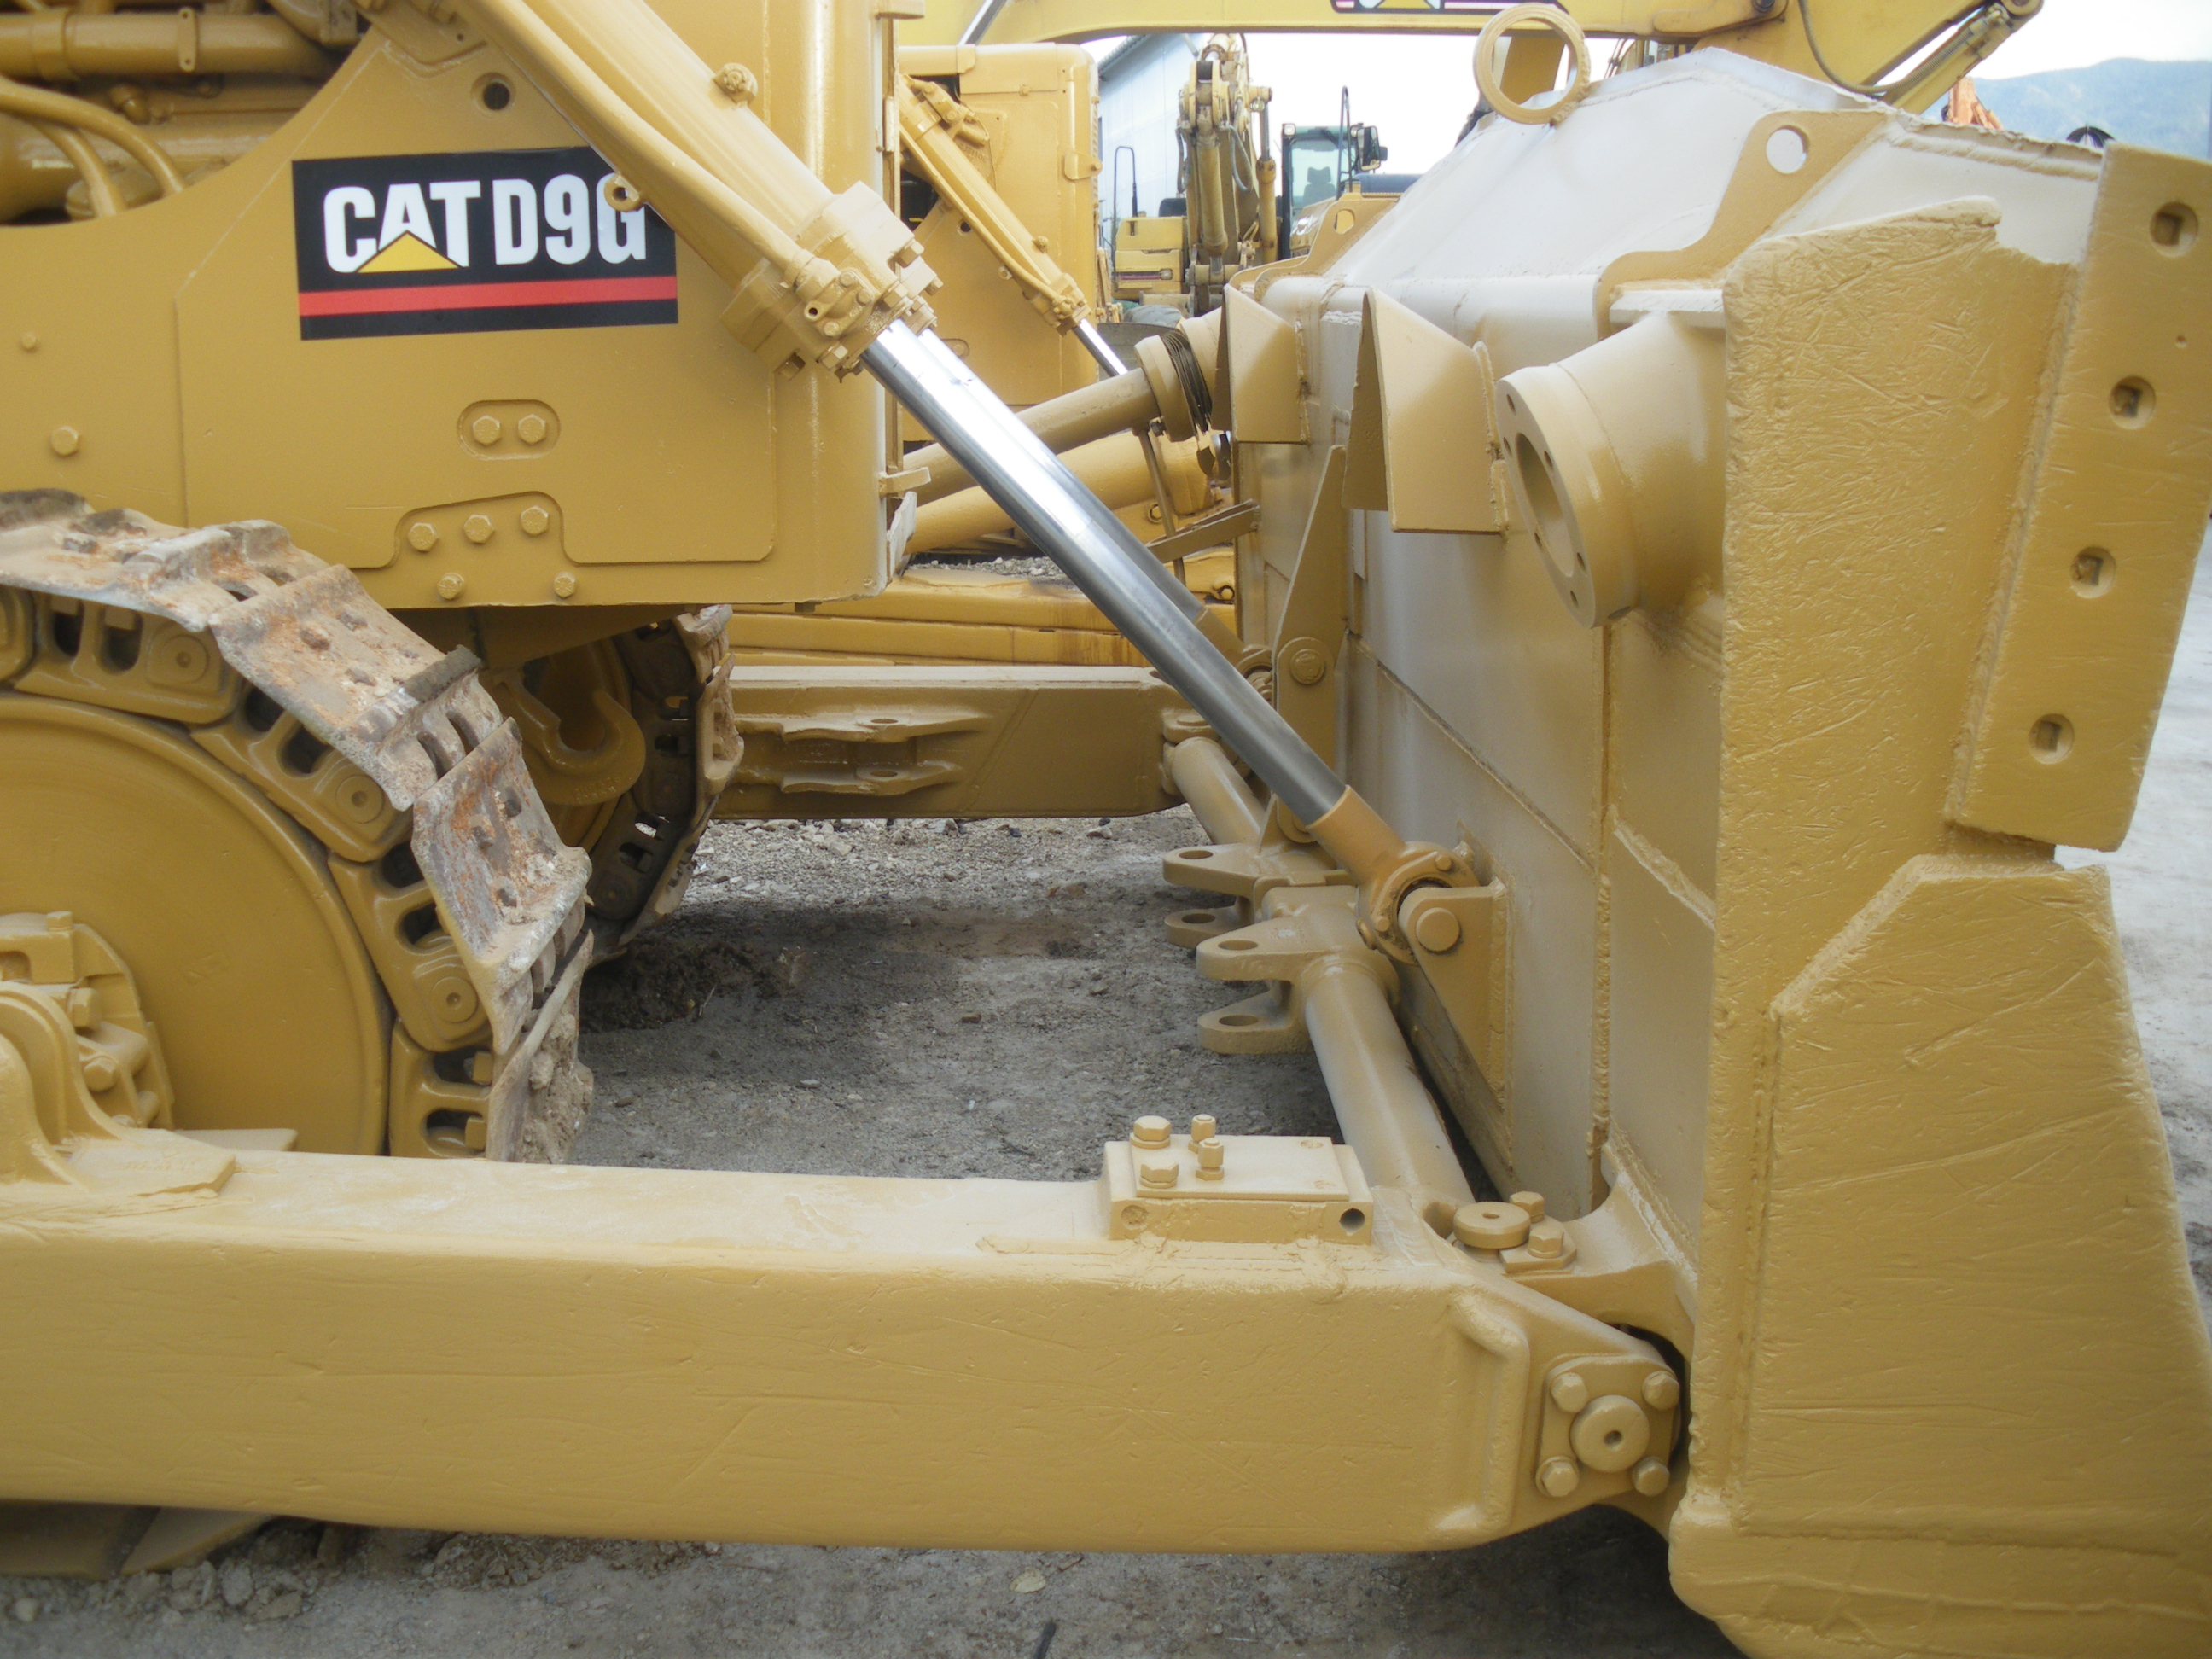 CATERPILLAR D 9 G BULLDOZER